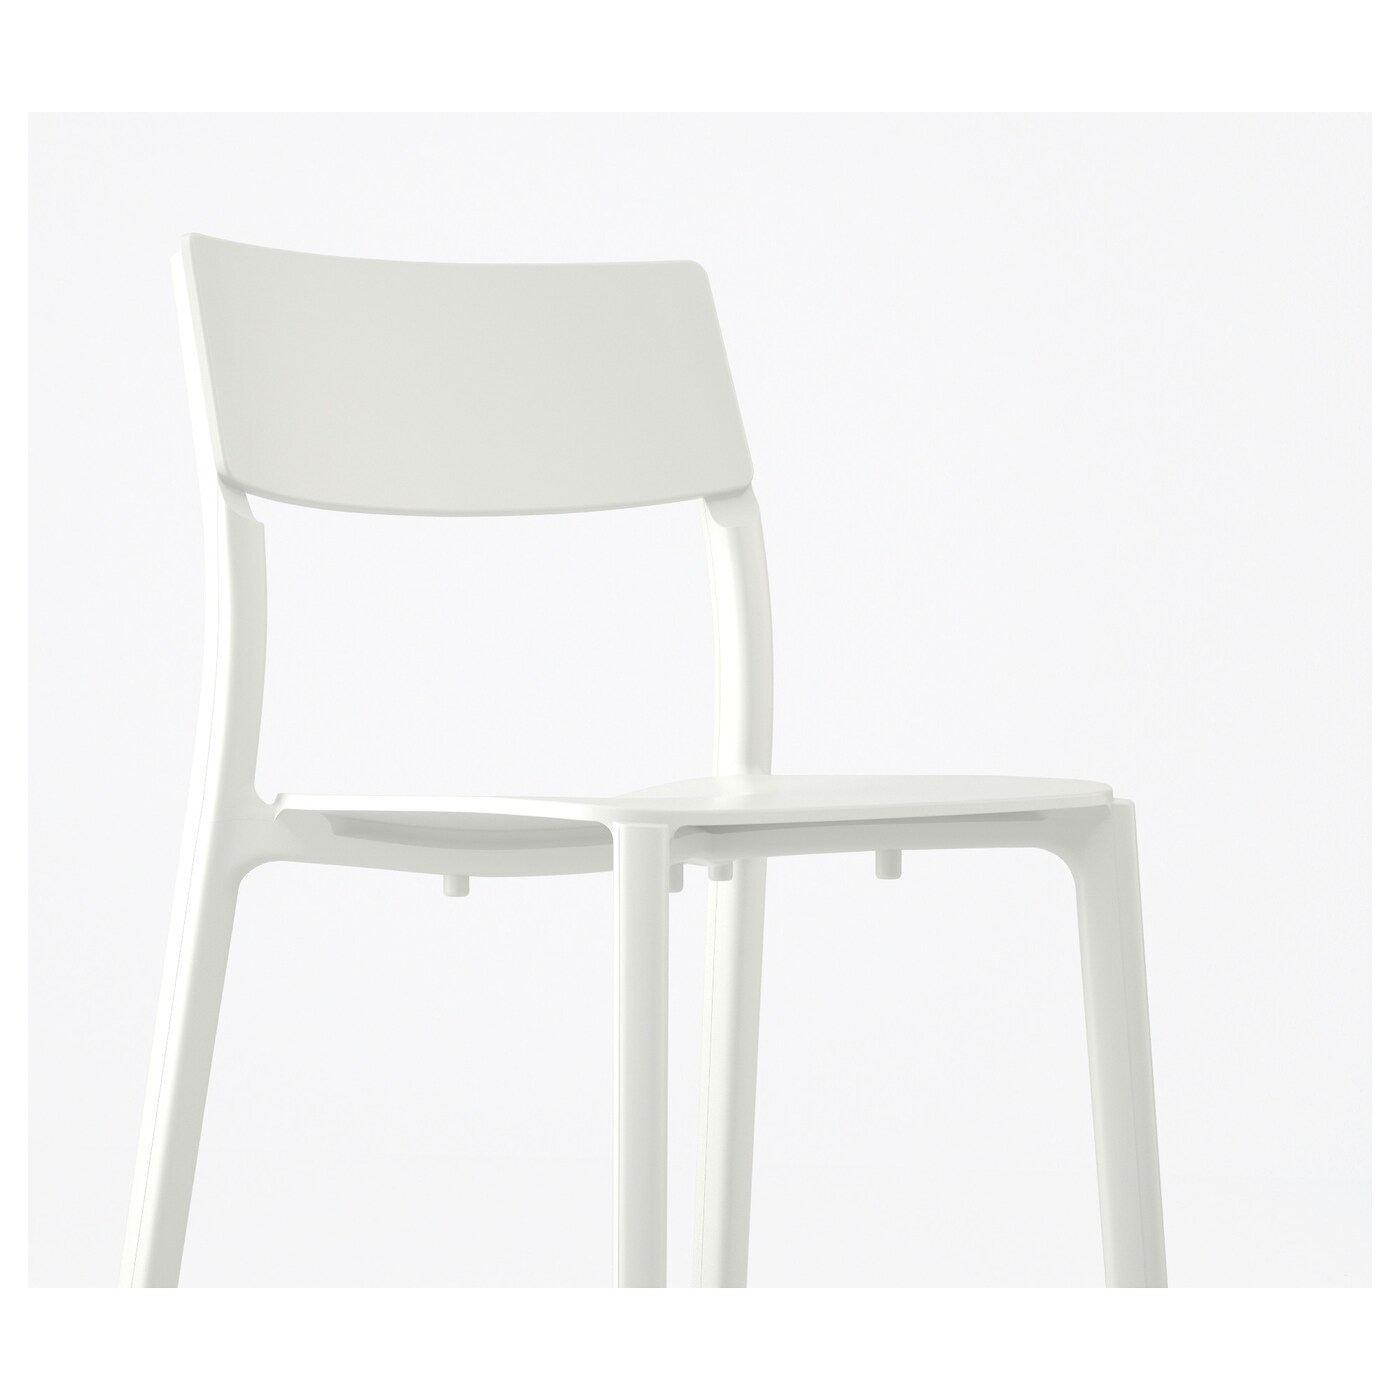 White Chair Ikea Janinge Chair White Ikea